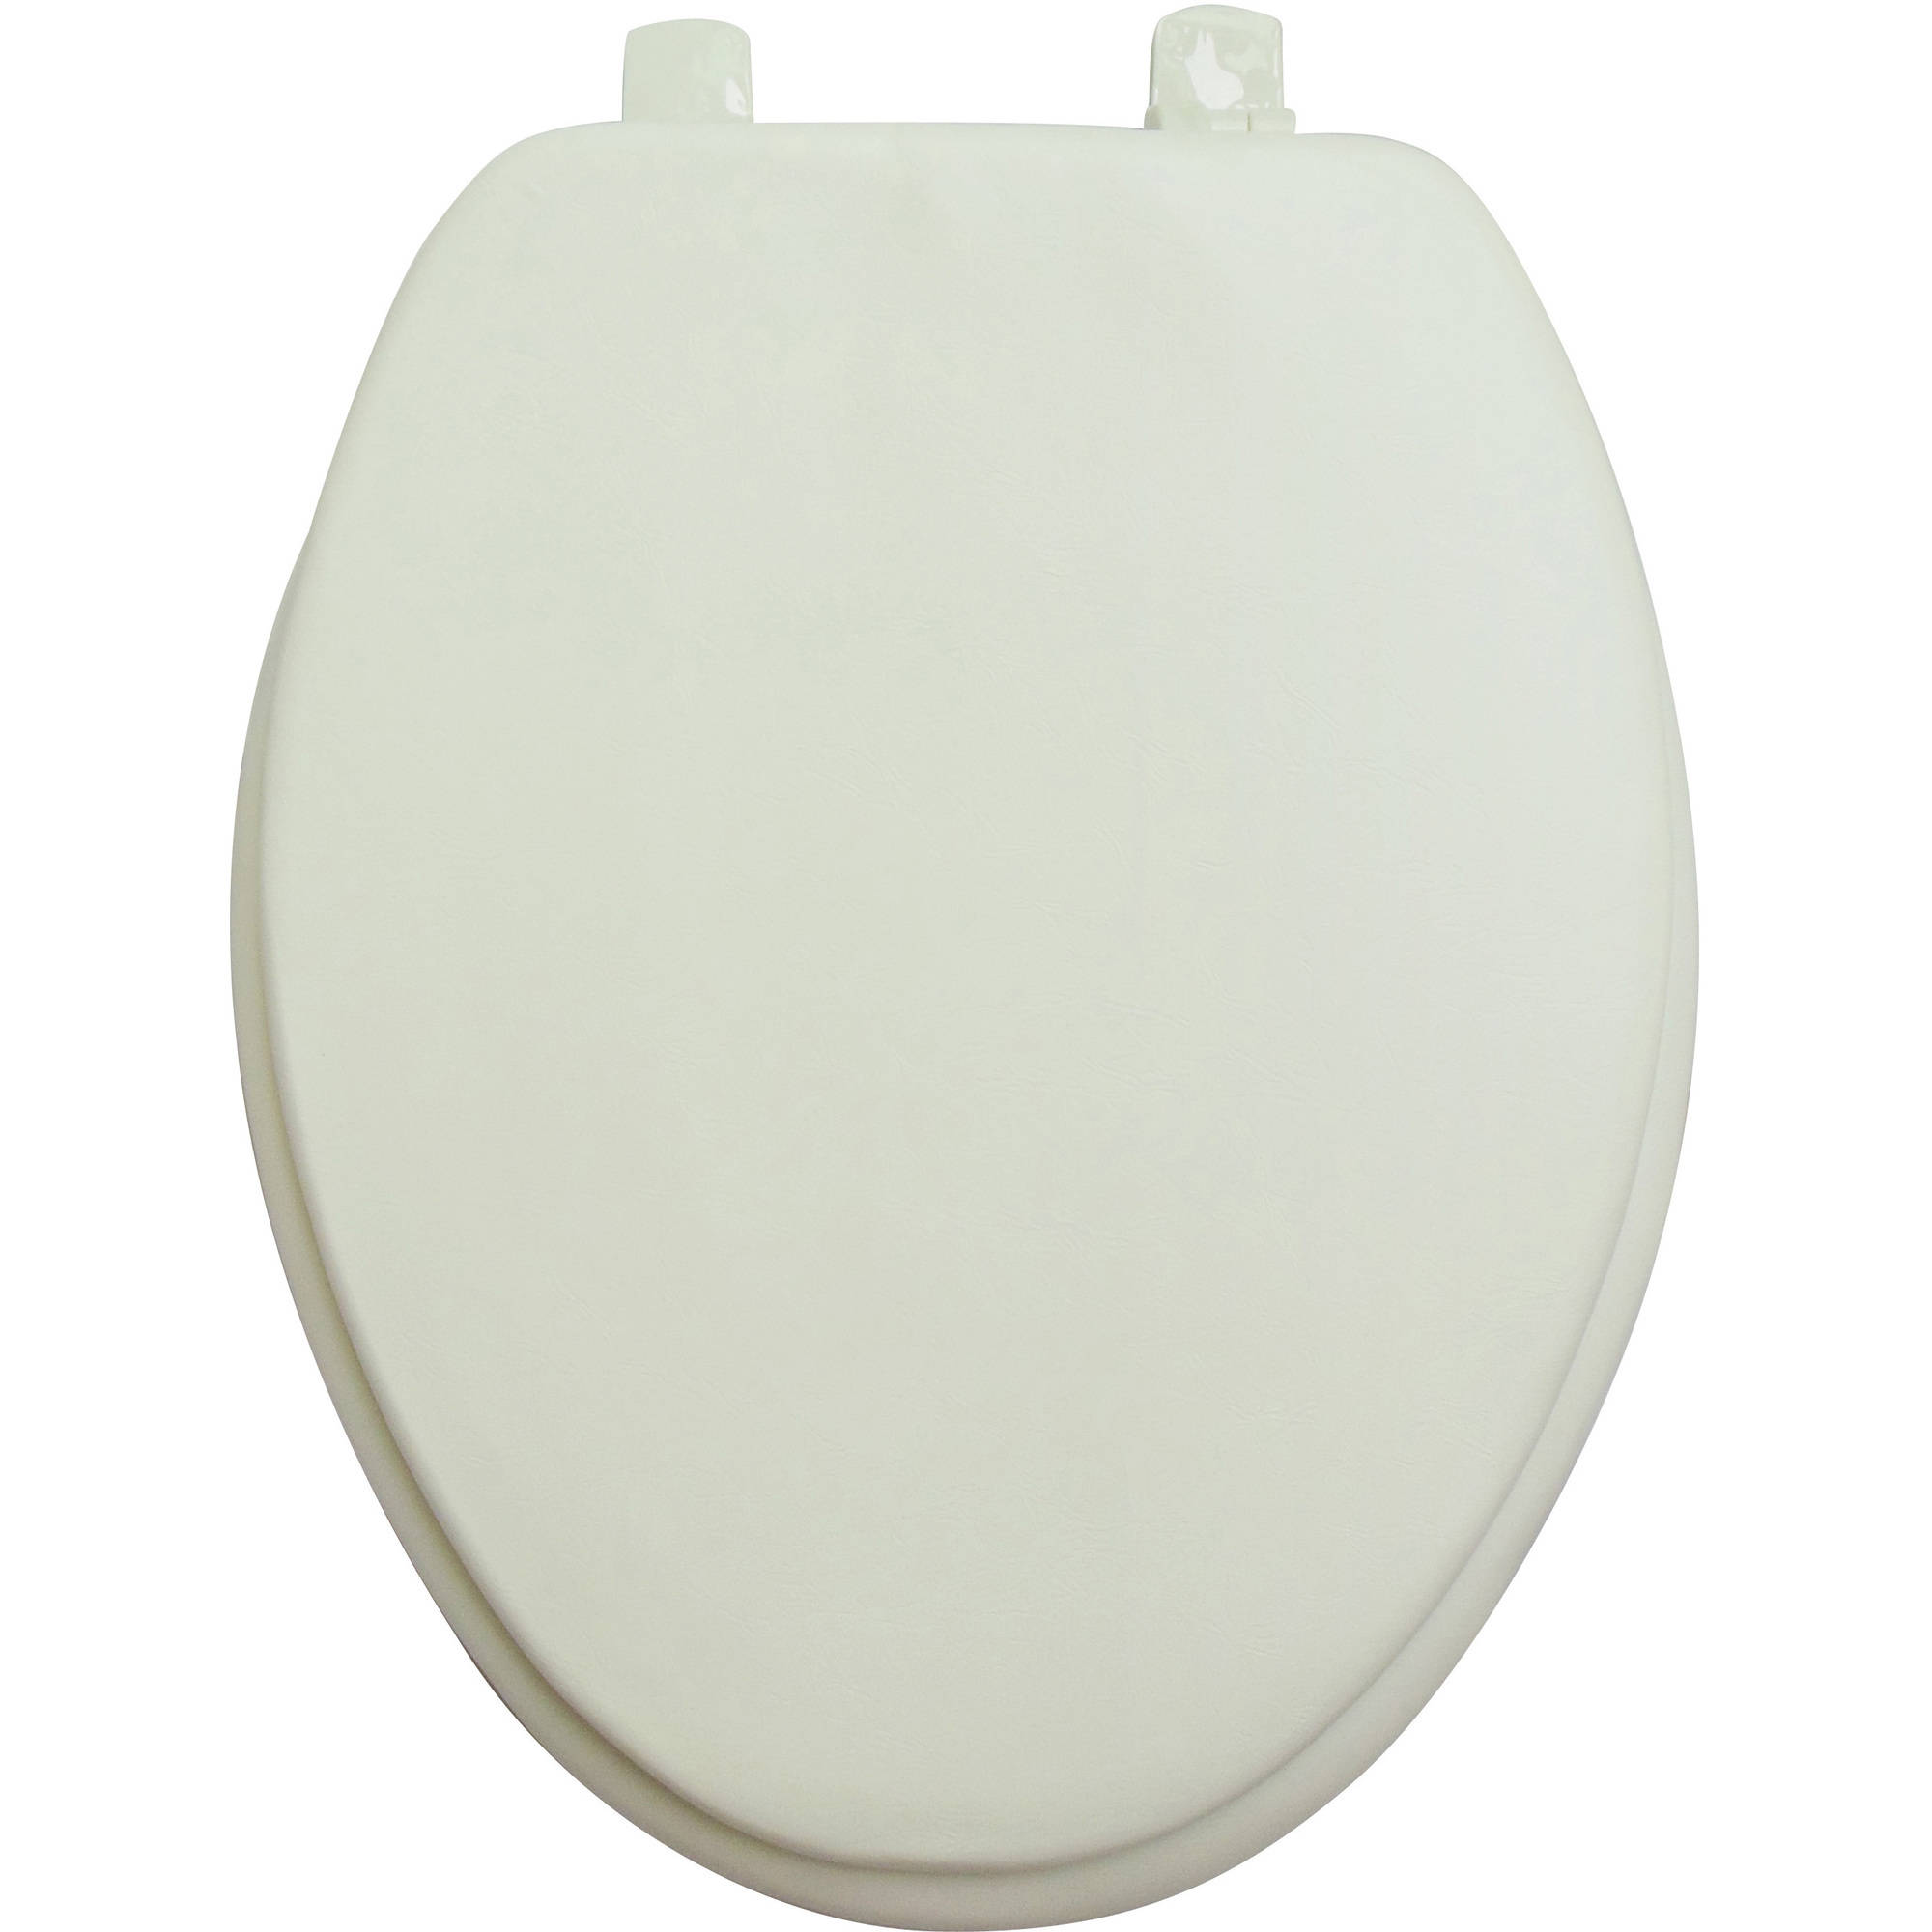 Vinyl Toilet Seat Cushion | Bemis Toilet Seat | Cushioned Toilet Seats